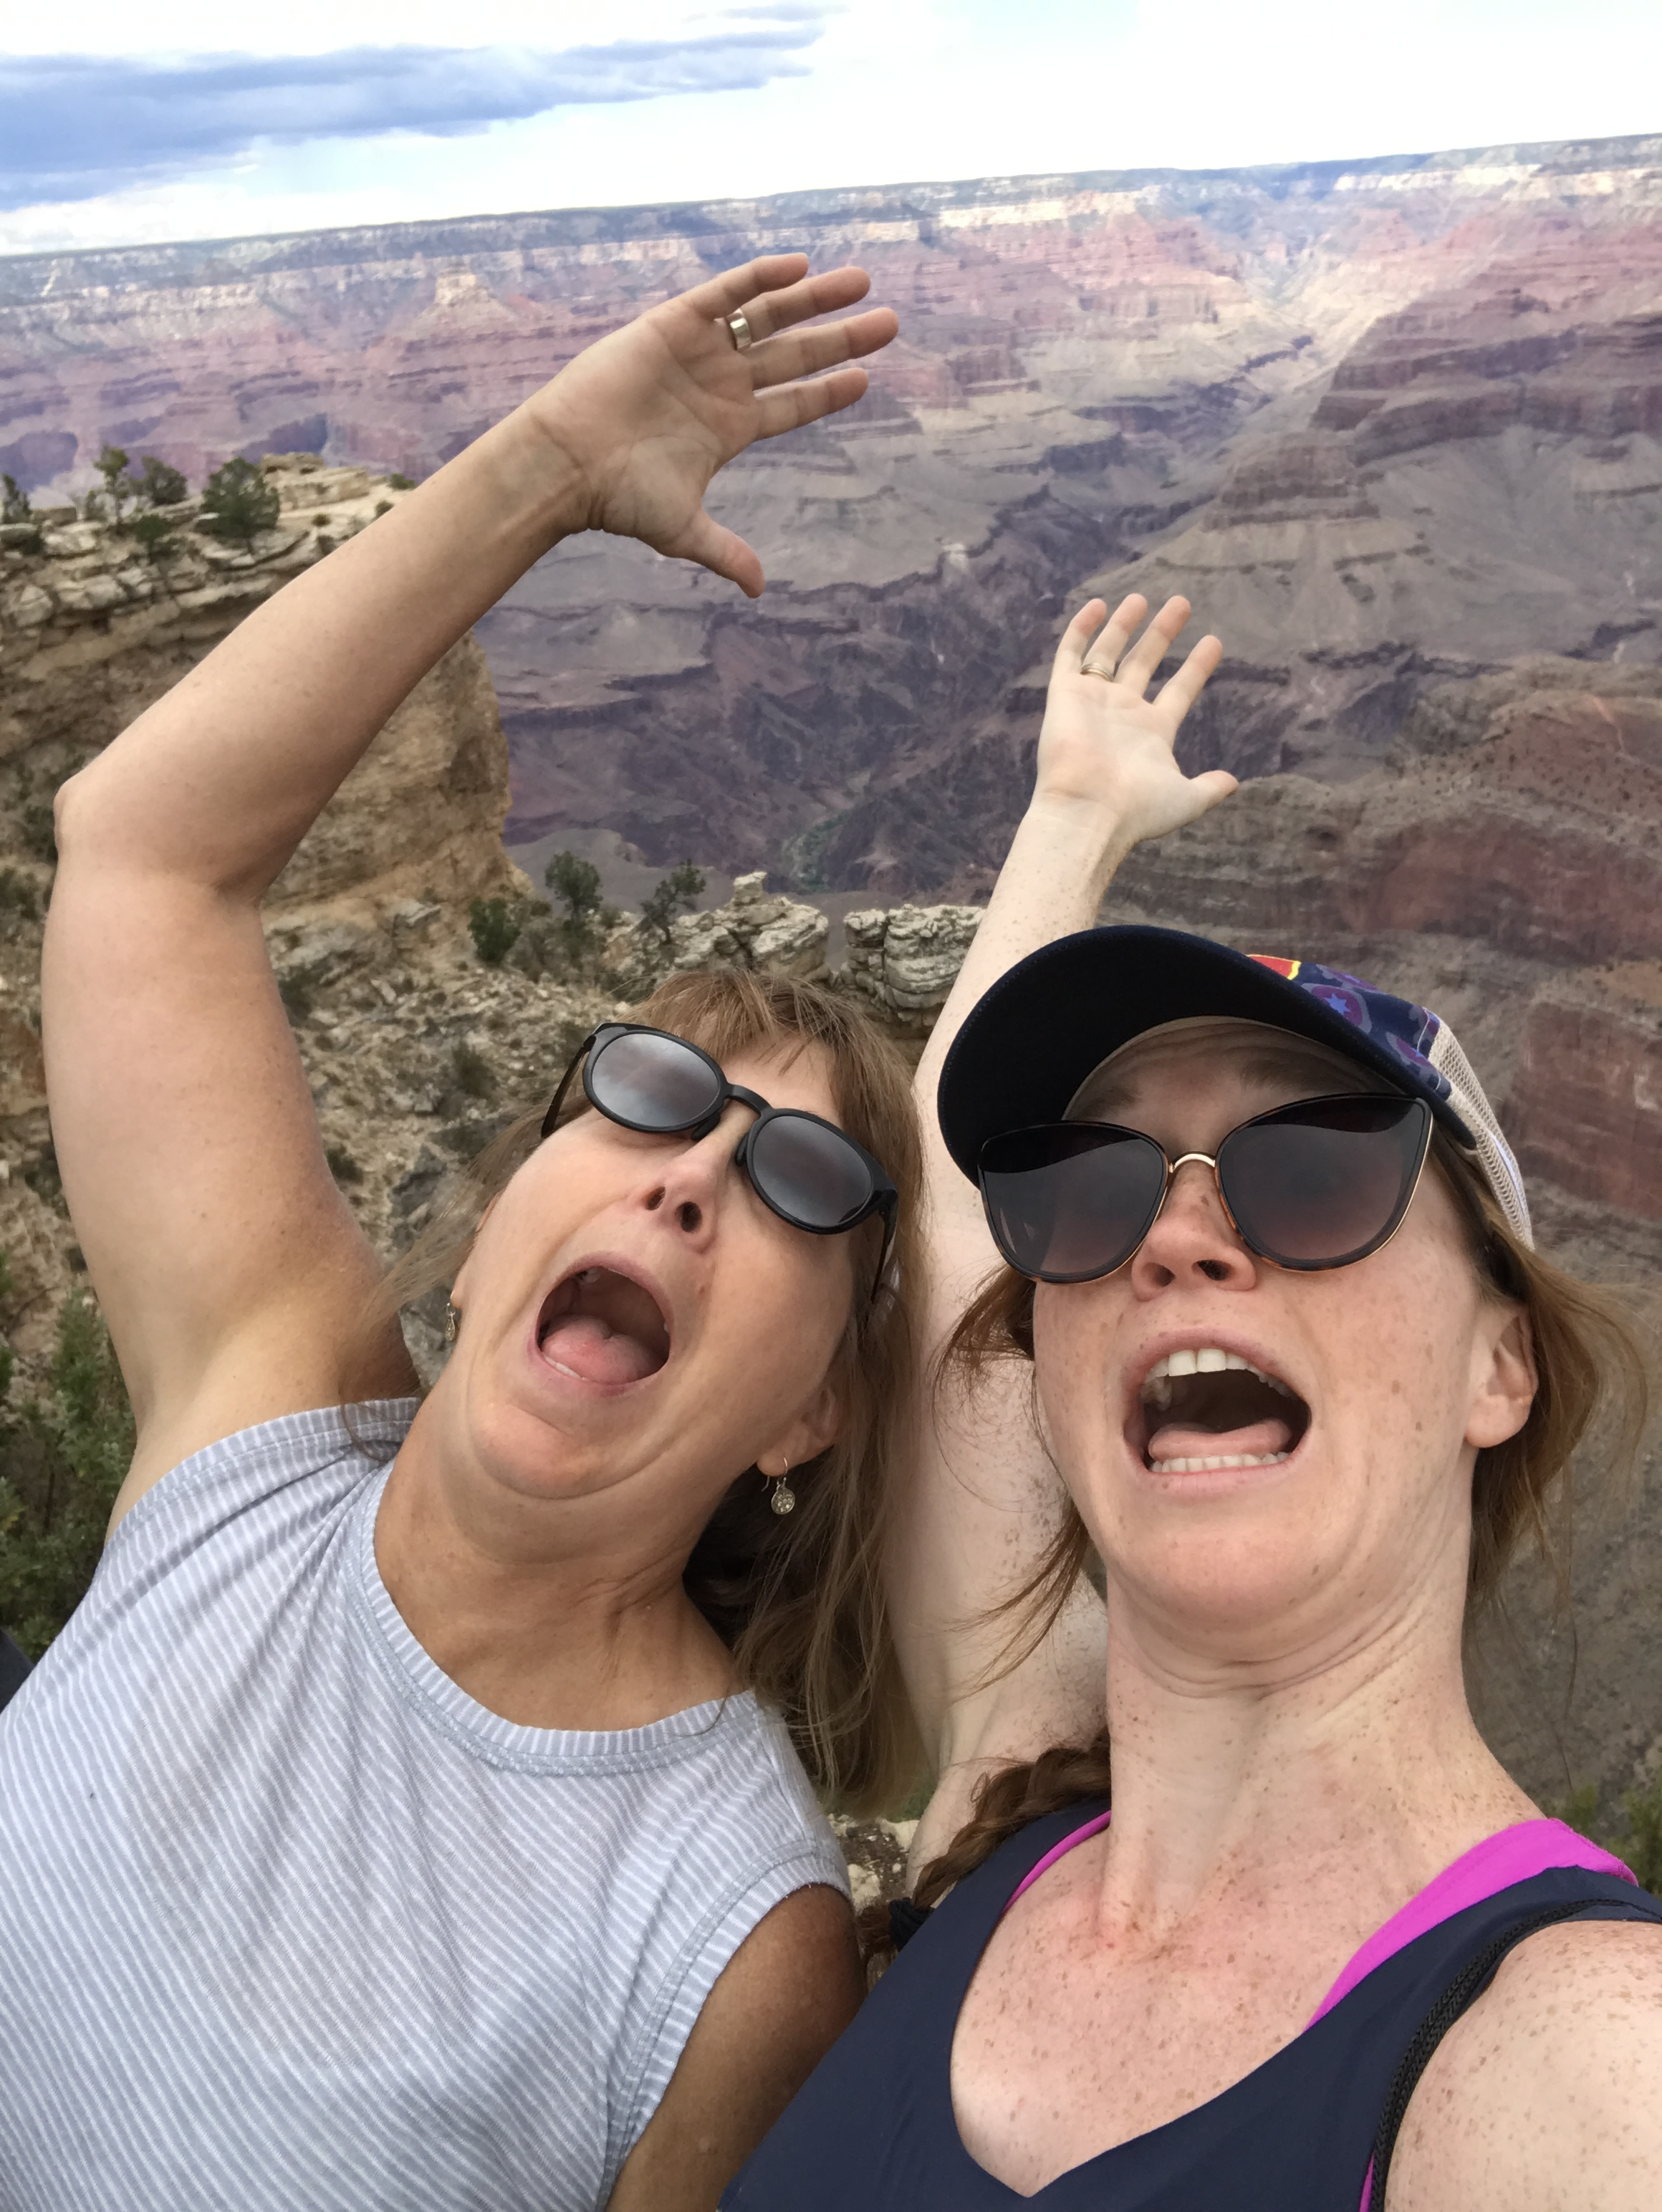 falling in the Grand Canyon. Blanche took this picture right before she pulled us back to safety.